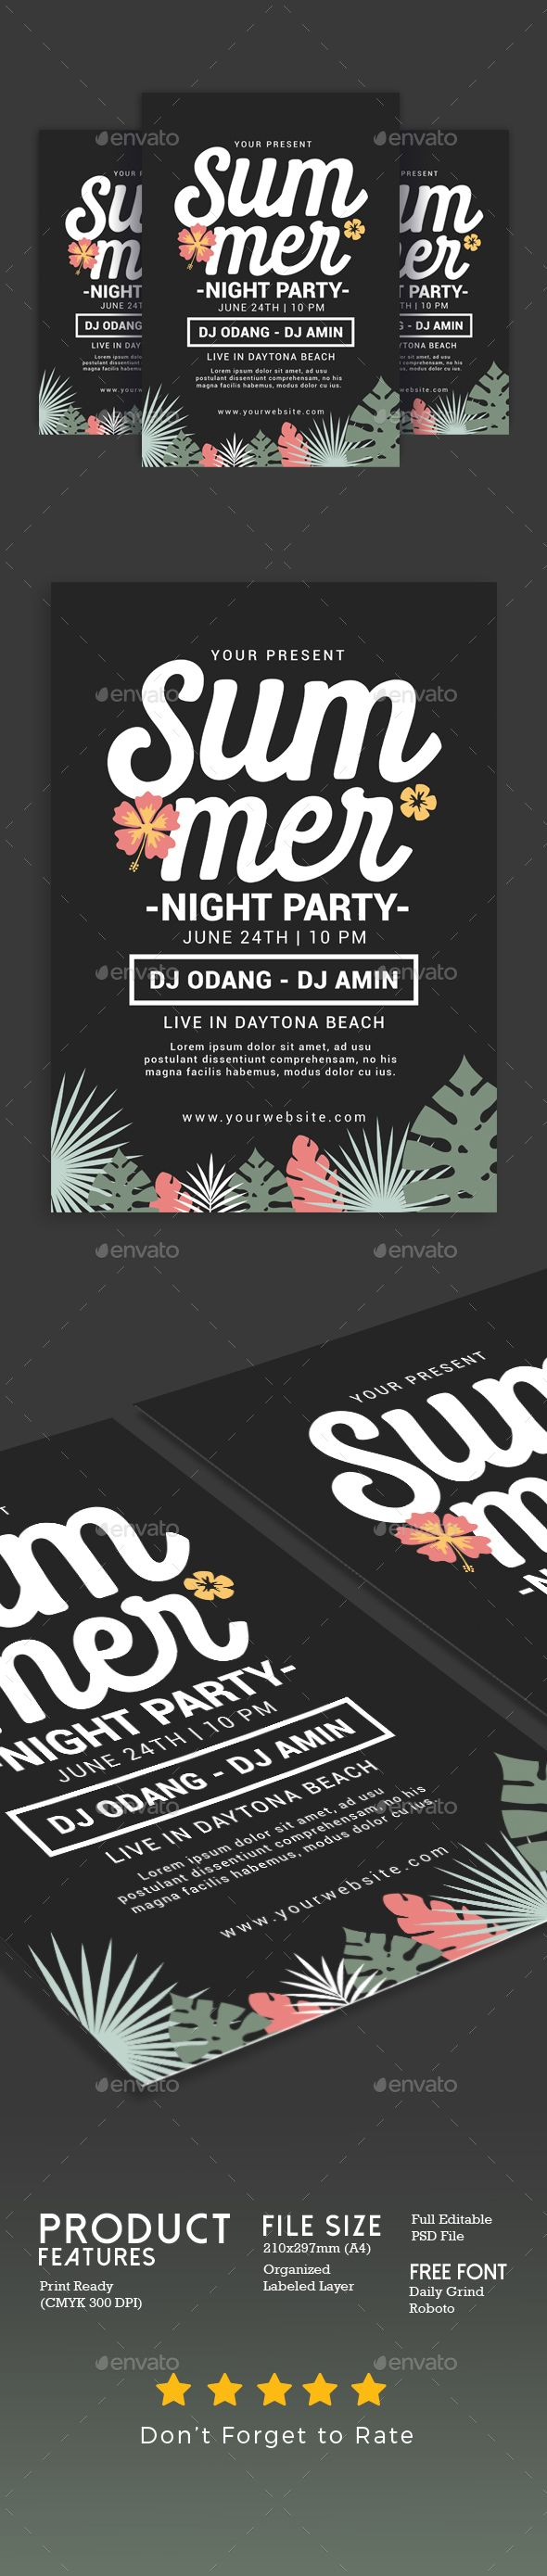 #Summer Night #Party - Events #Flyers Download here: https://graphicriver.net/item/summer-night-party/20300952?ref=alena994